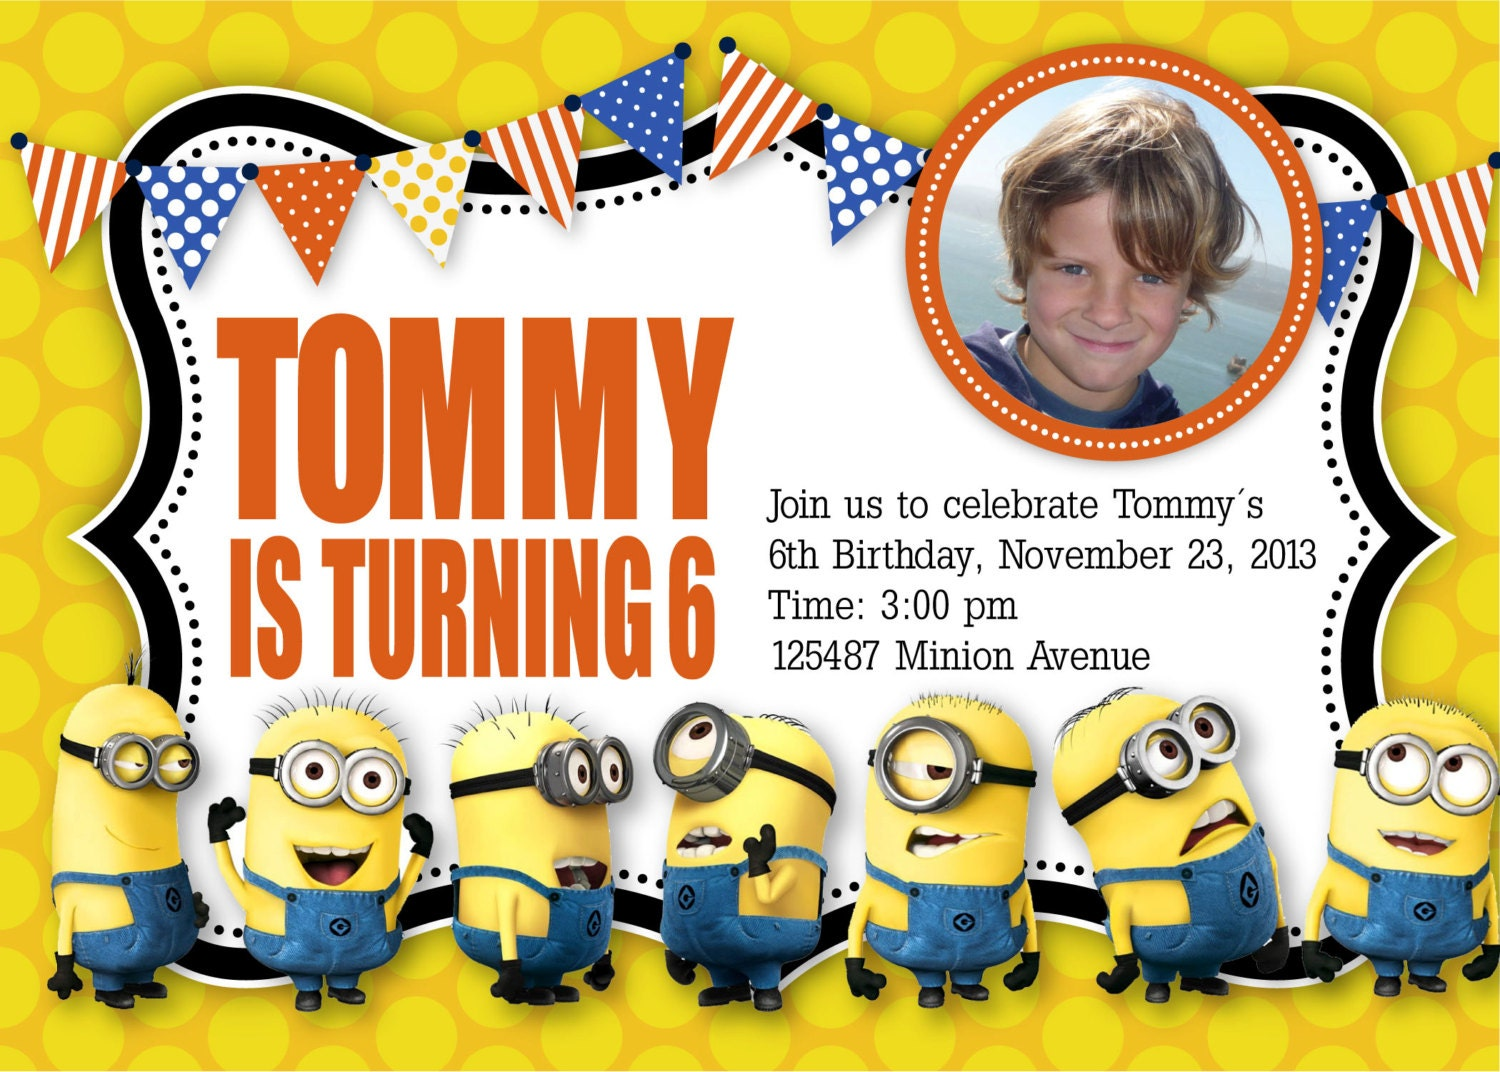 Minion Birthday Invitation is an amazing ideas you had to choose for invitation design